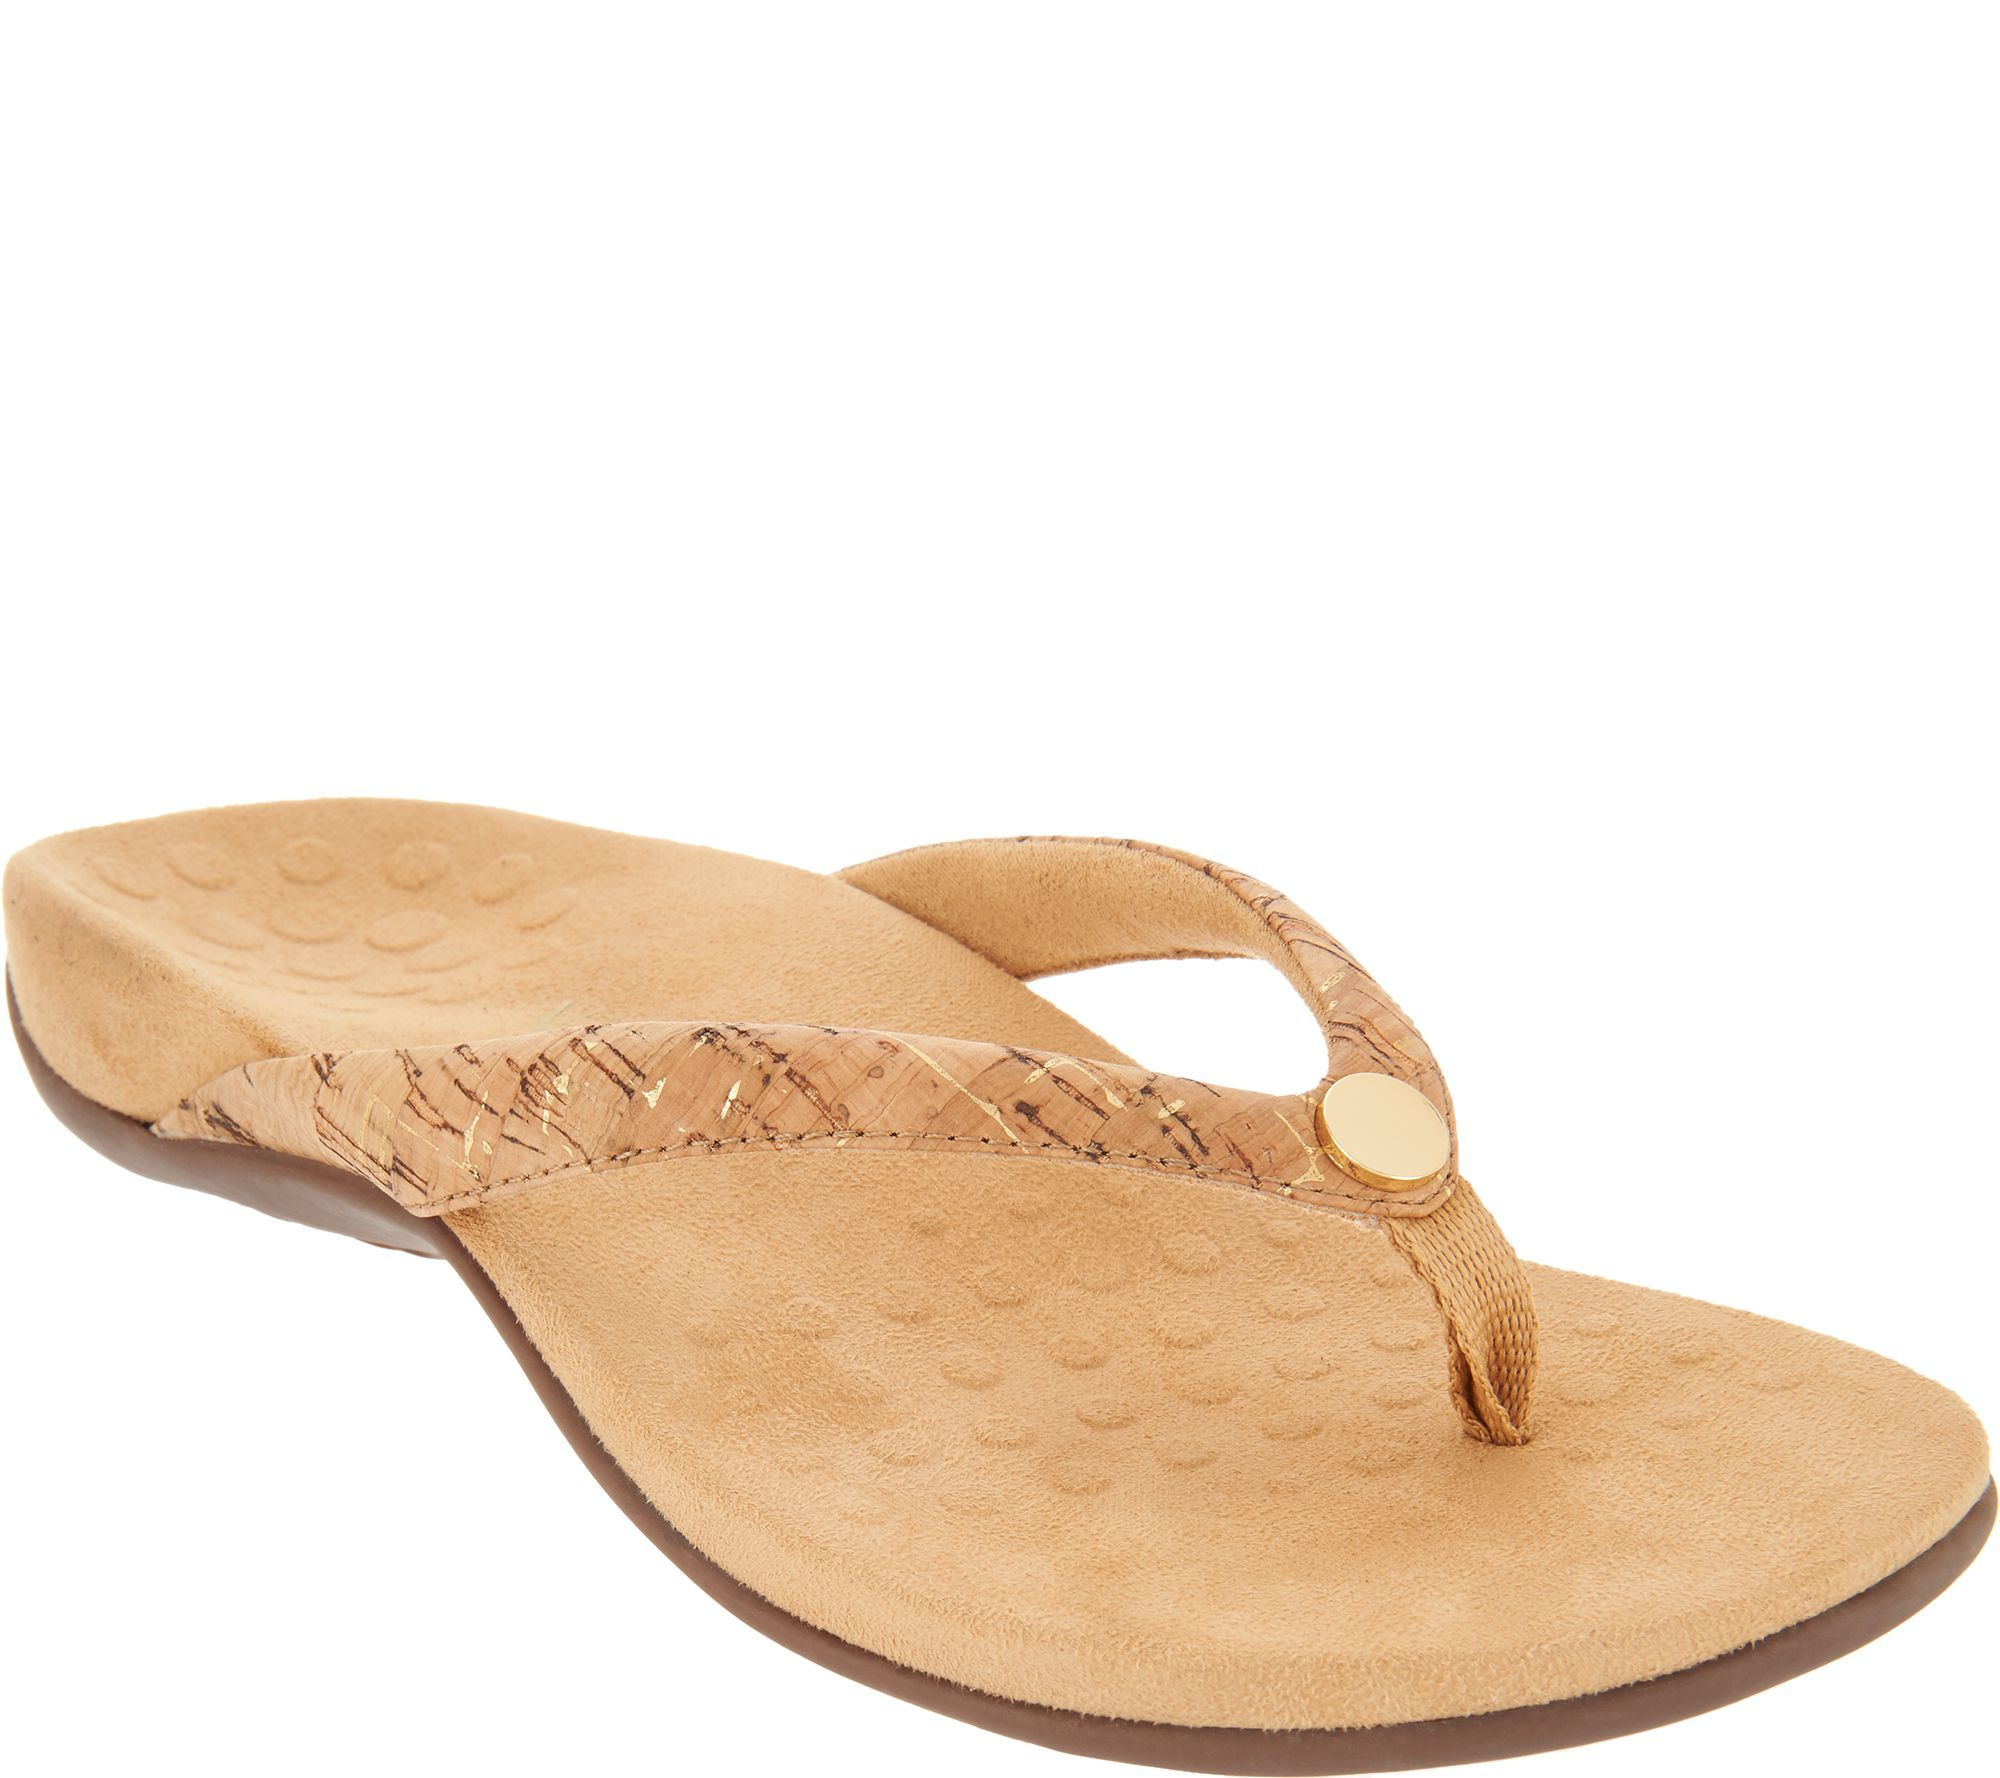 7f65257e6be Step out in summery style without sacrificing support in these podiatrist  designed thong sandals with jpg